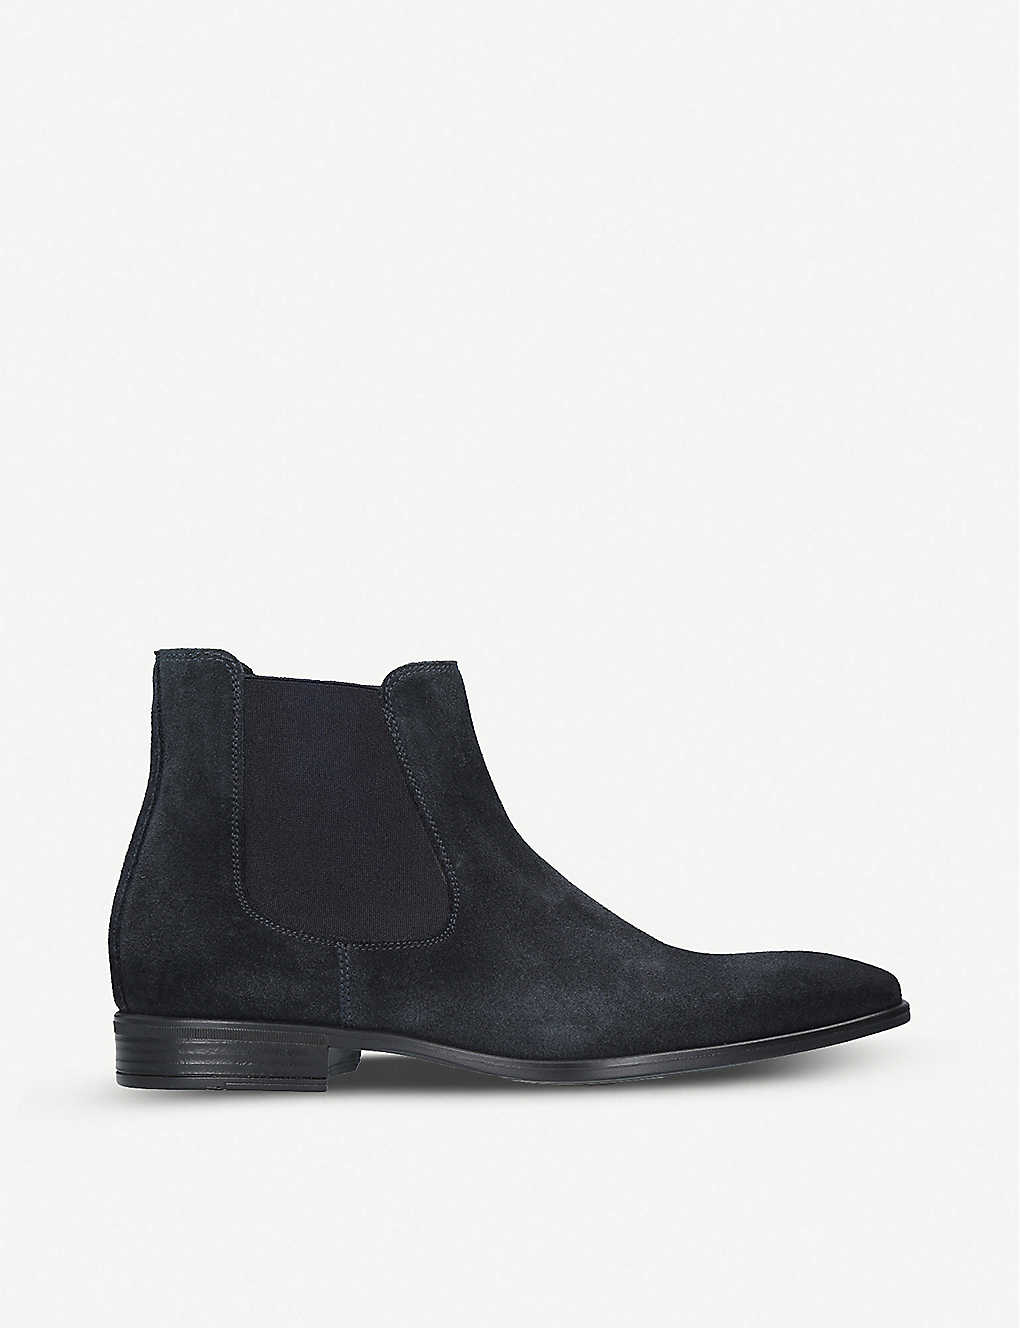 KURT GEIGER LONDON: Frederick suede Chelsea boots